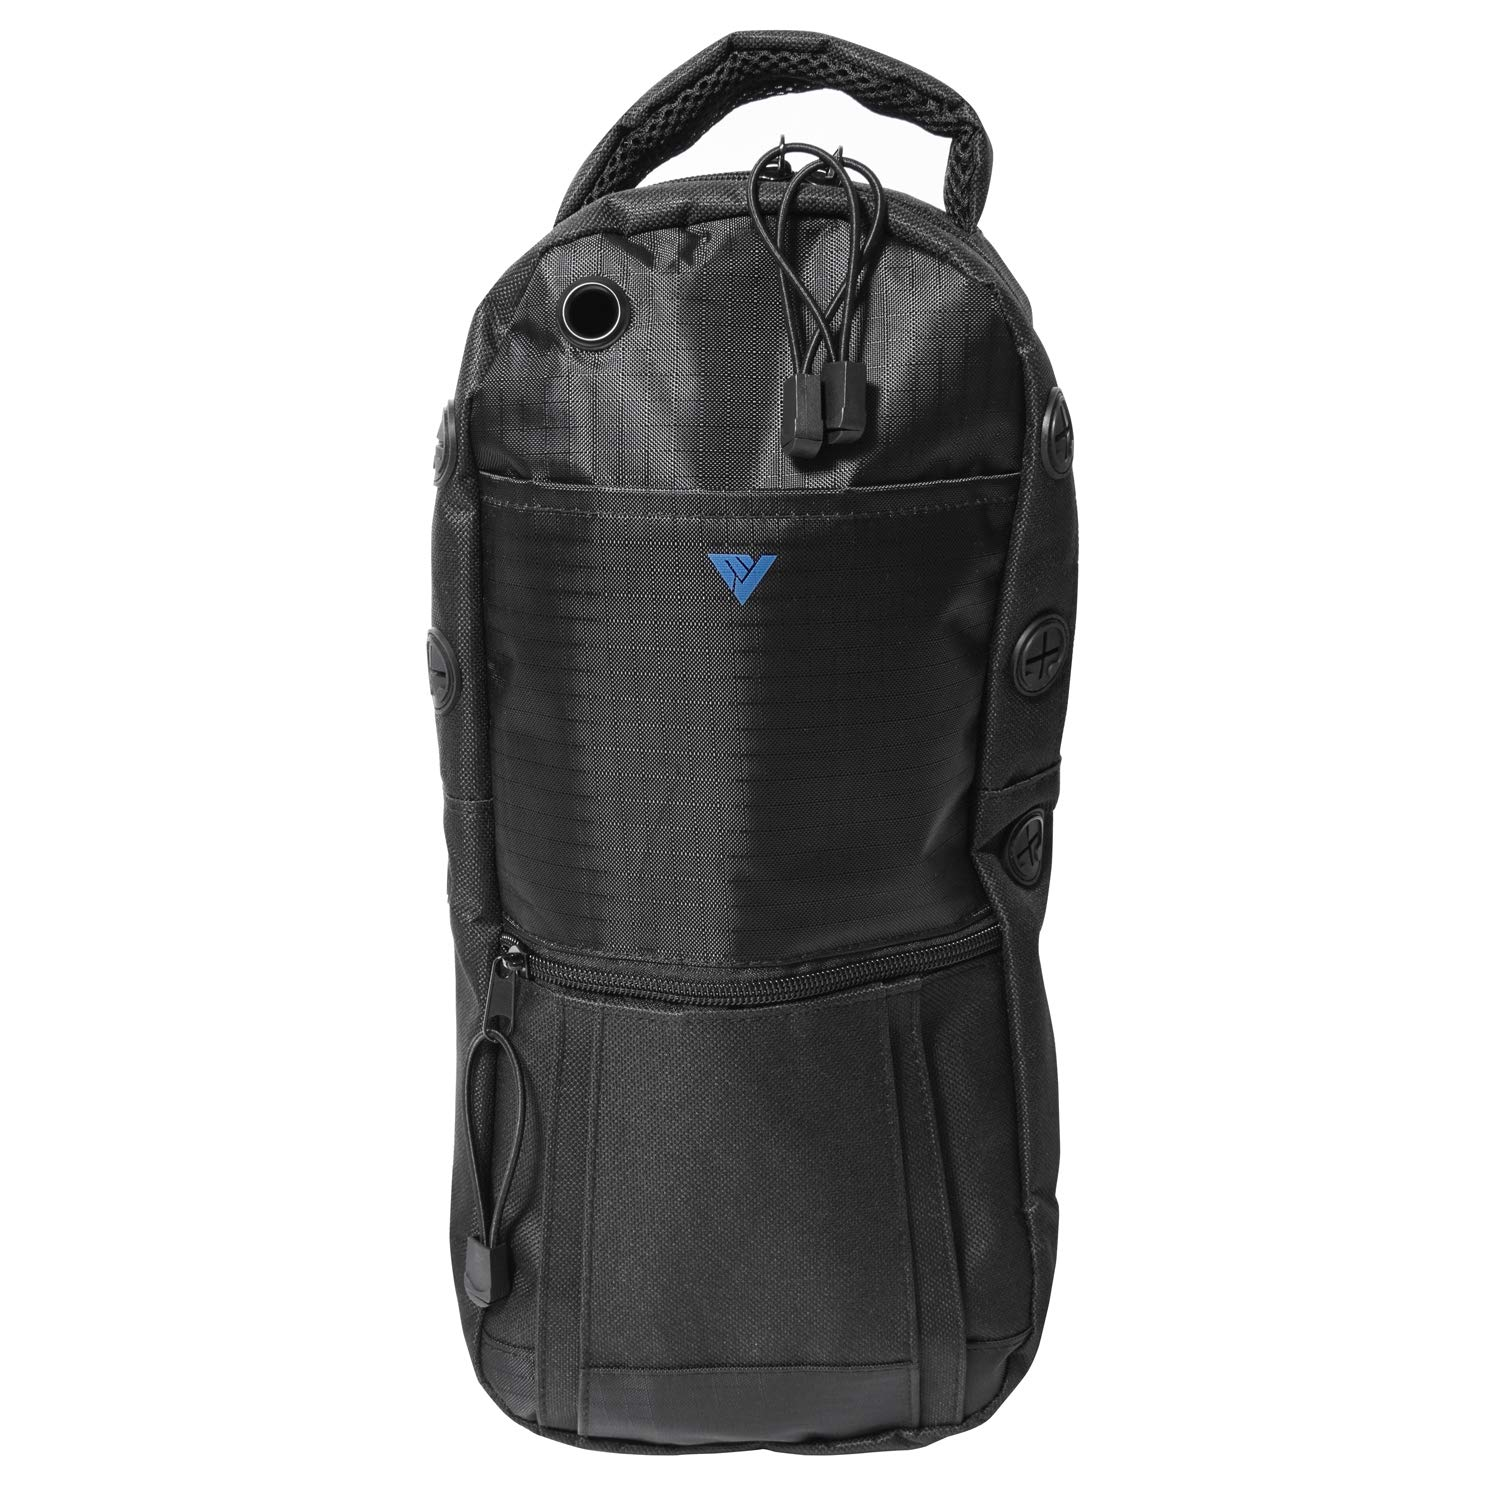 Oxygen Cylinder Backpack, Water Resistant and Portable for Walking and Standing with Adjustable Straps, Double Mesh Padded Bag for Travel, Black, M2 M4 ML6 M6 M7 M9 Tanks (A, B and C Cylinder Sizes)